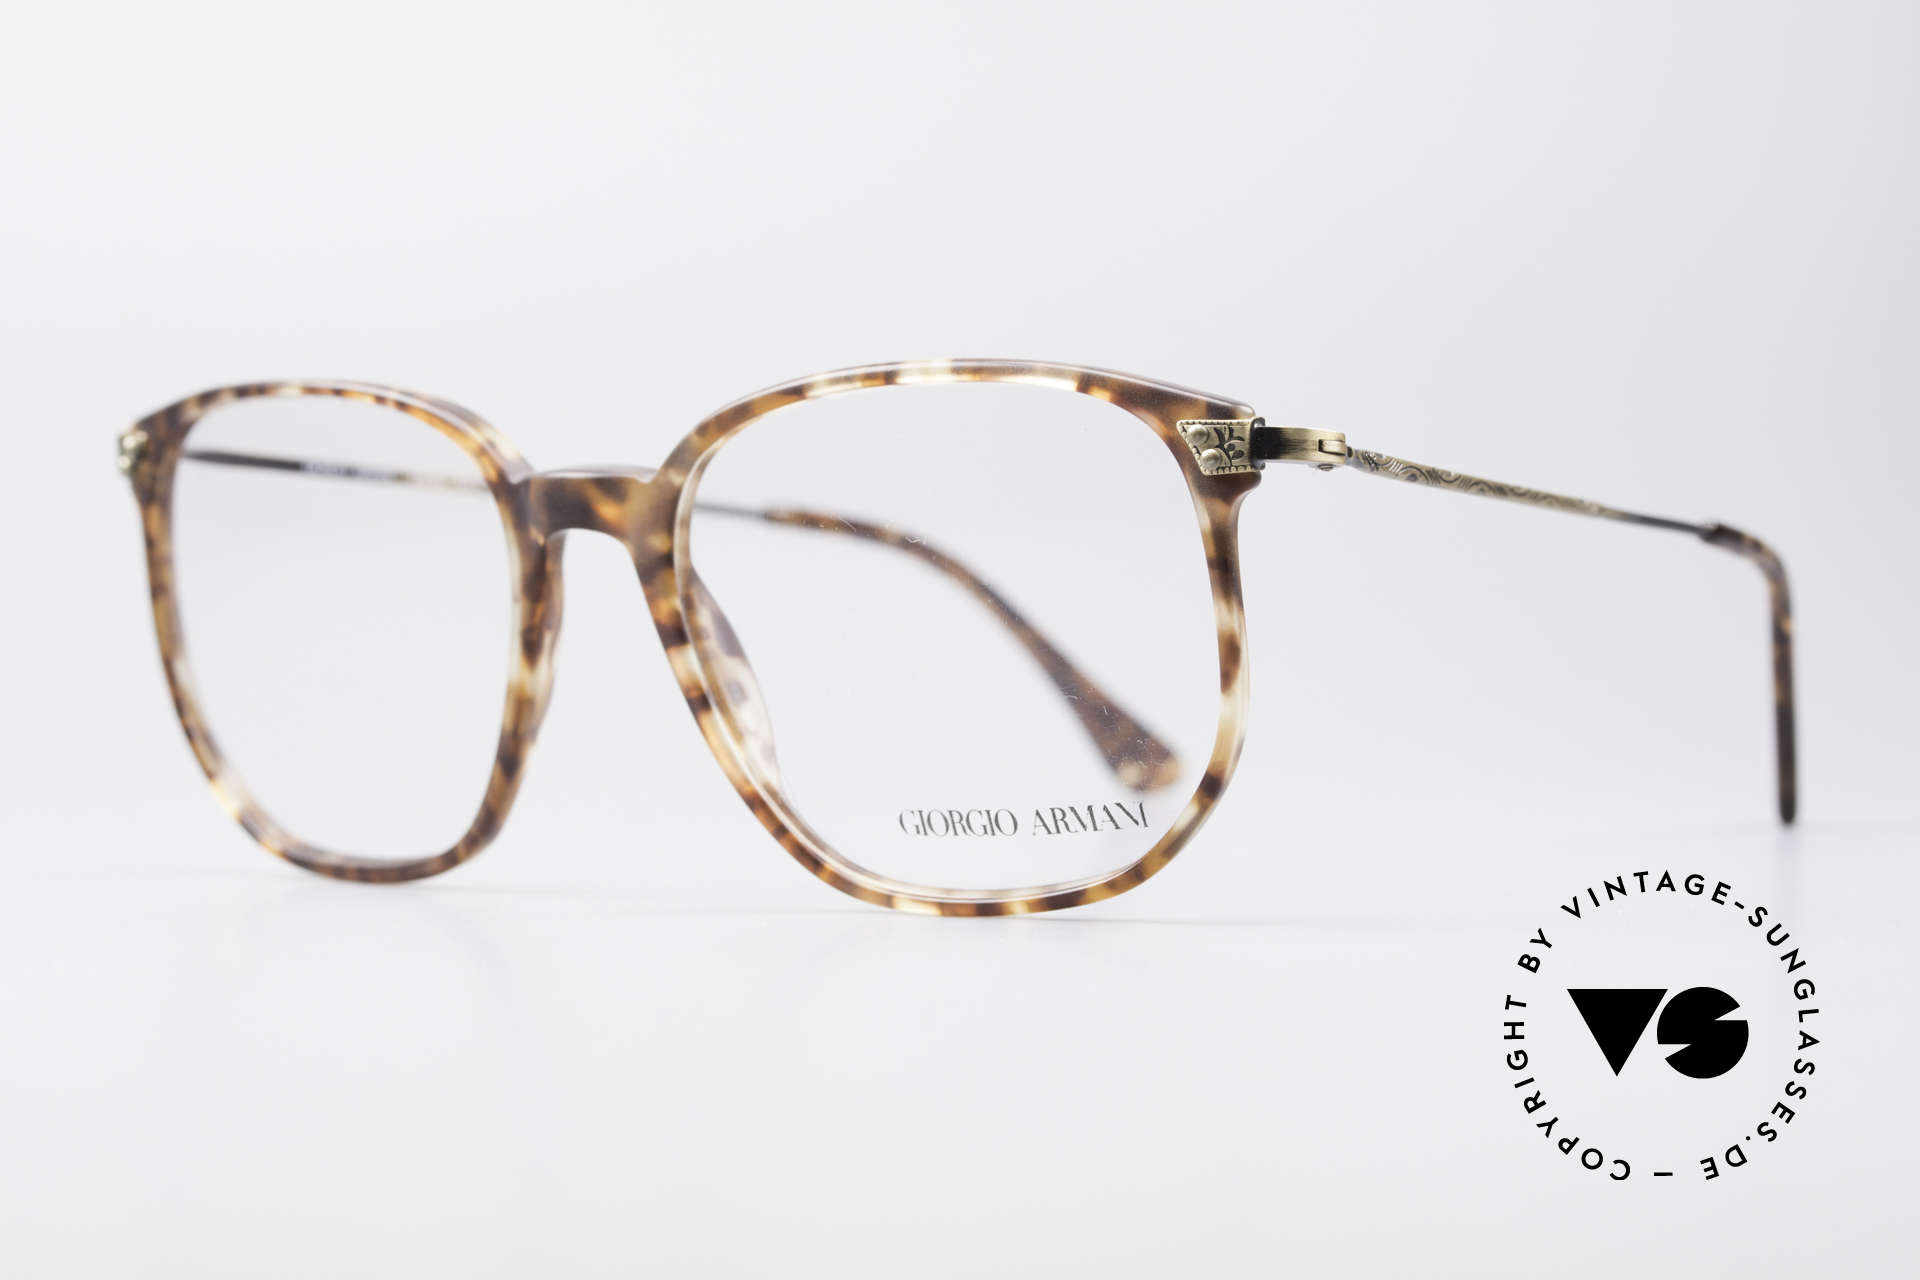 Giorgio Armani 335 True Vintage Eyeglasses, great pattern and temples with costly engravings, Made for Men and Women